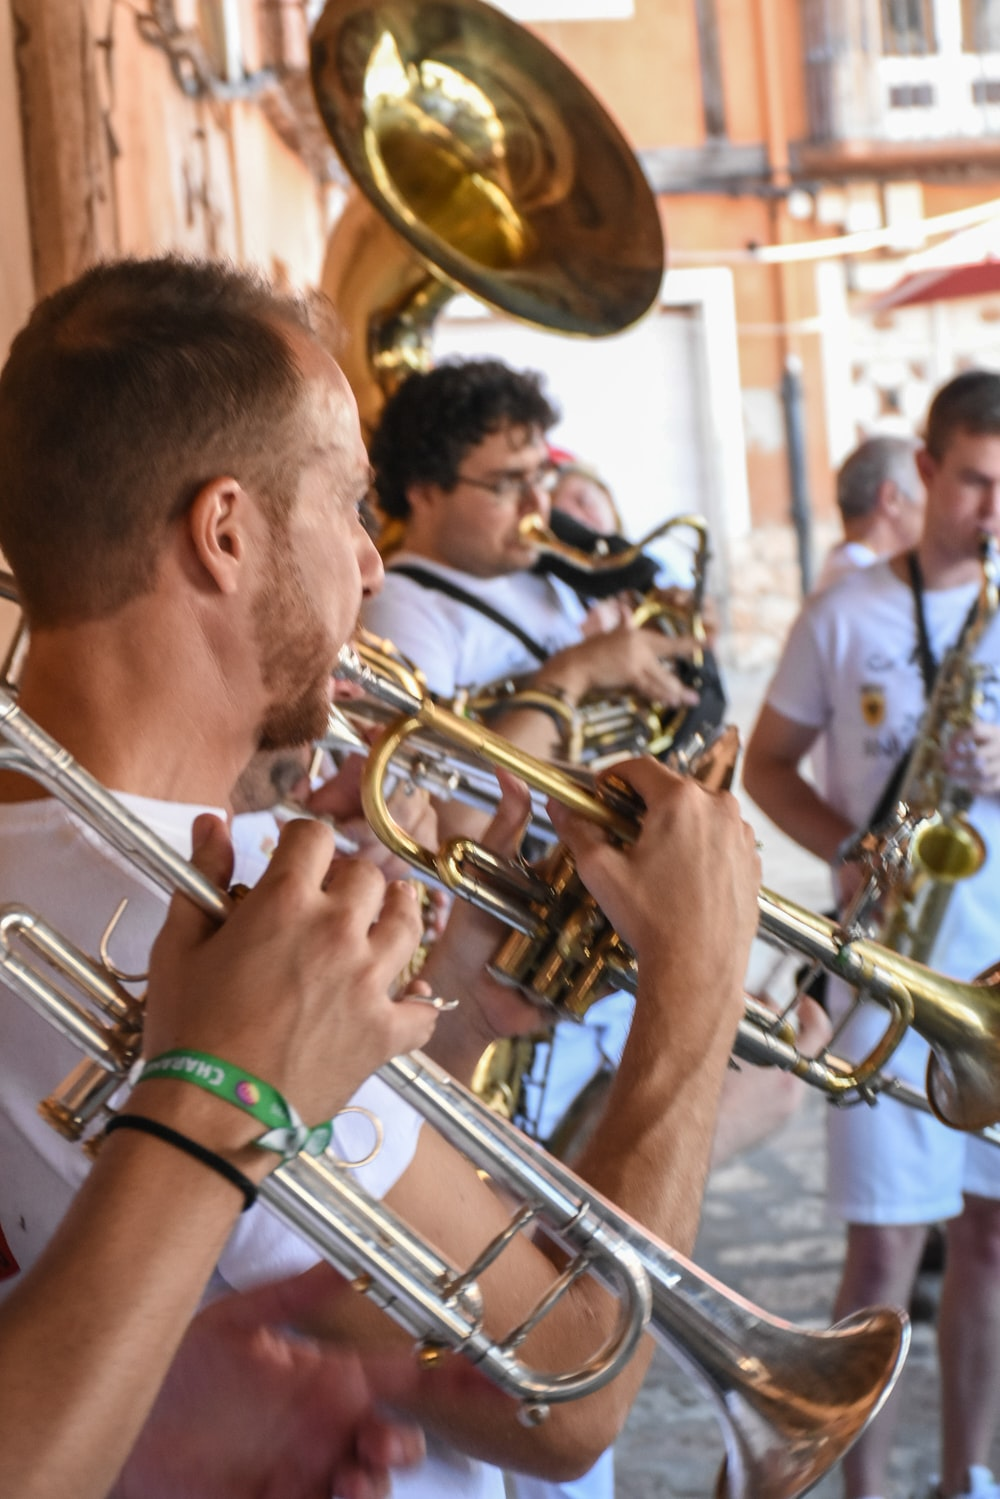 male band playing brass wind instrument outdoors